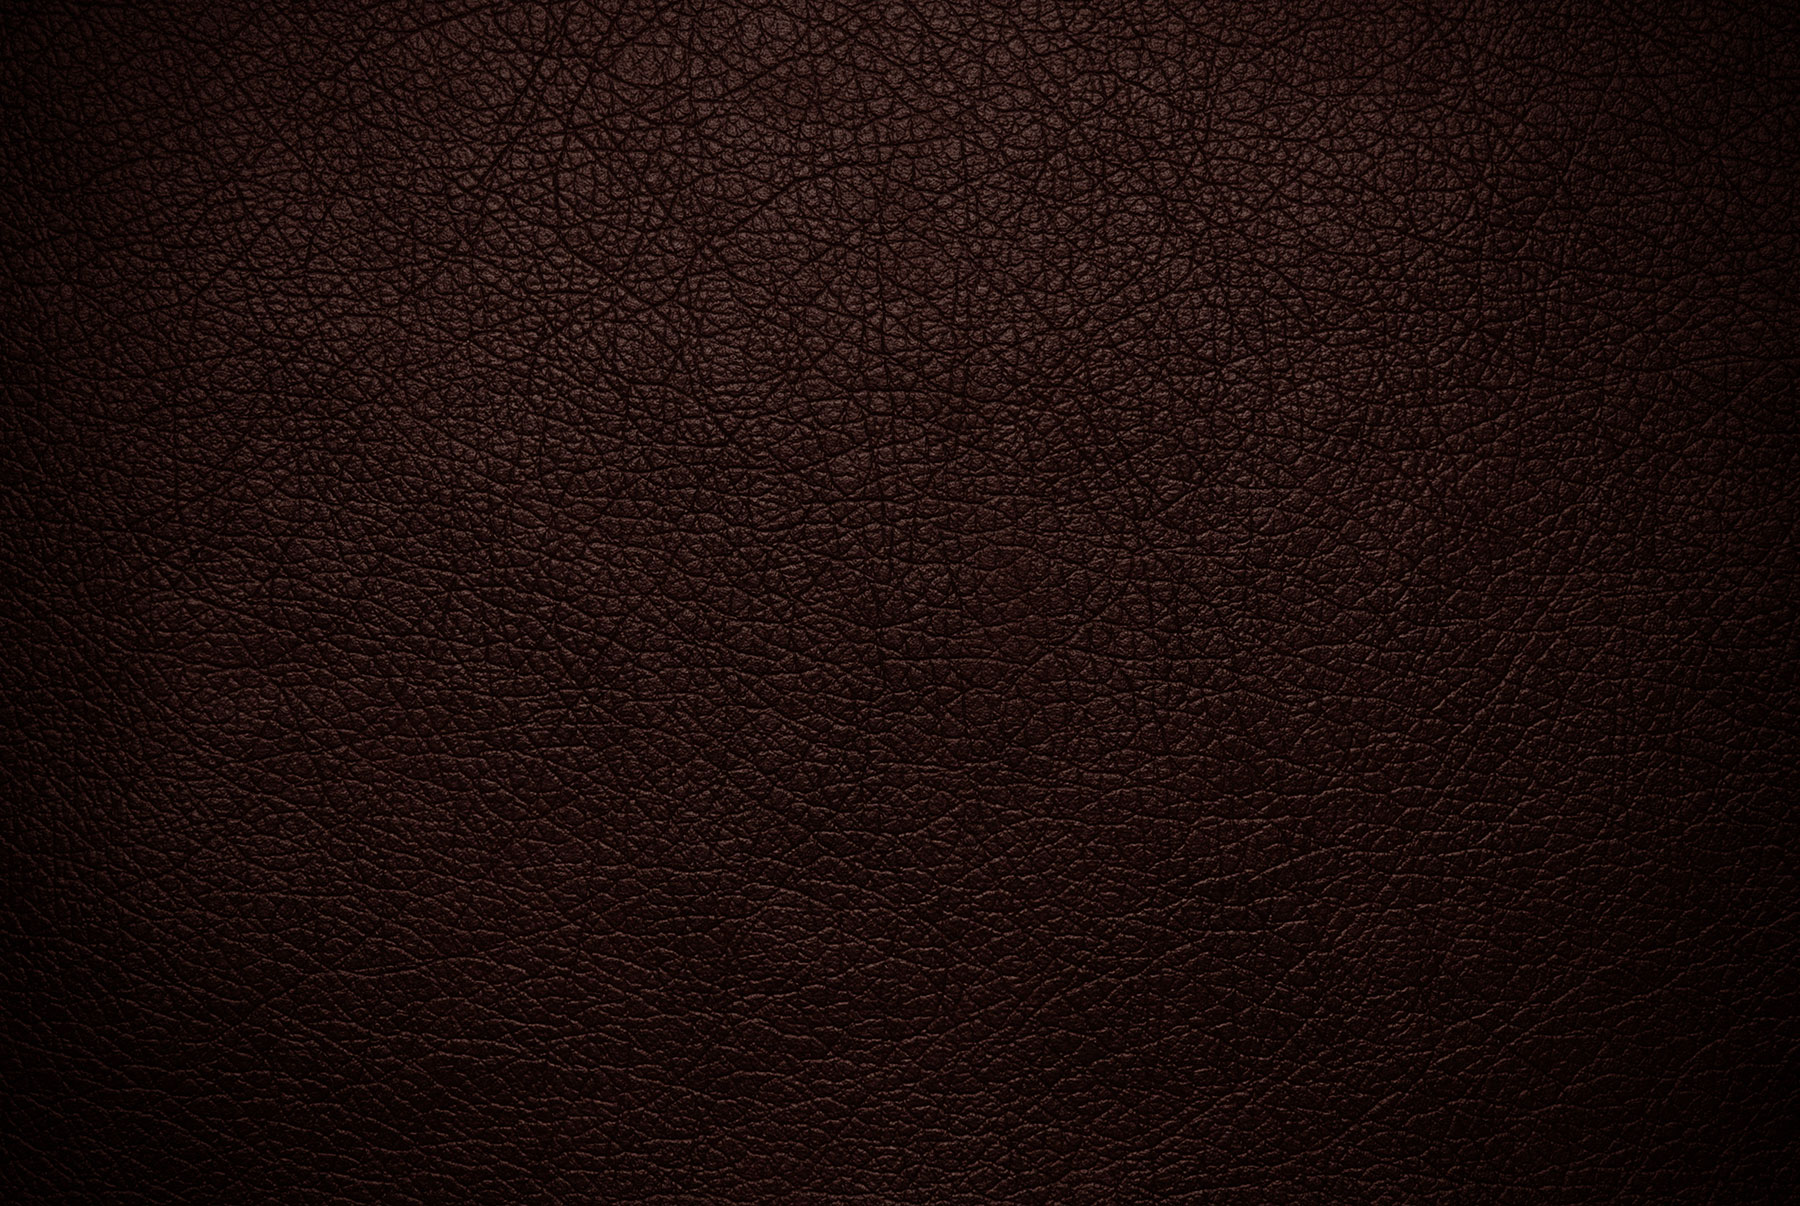 leather brown bkgr